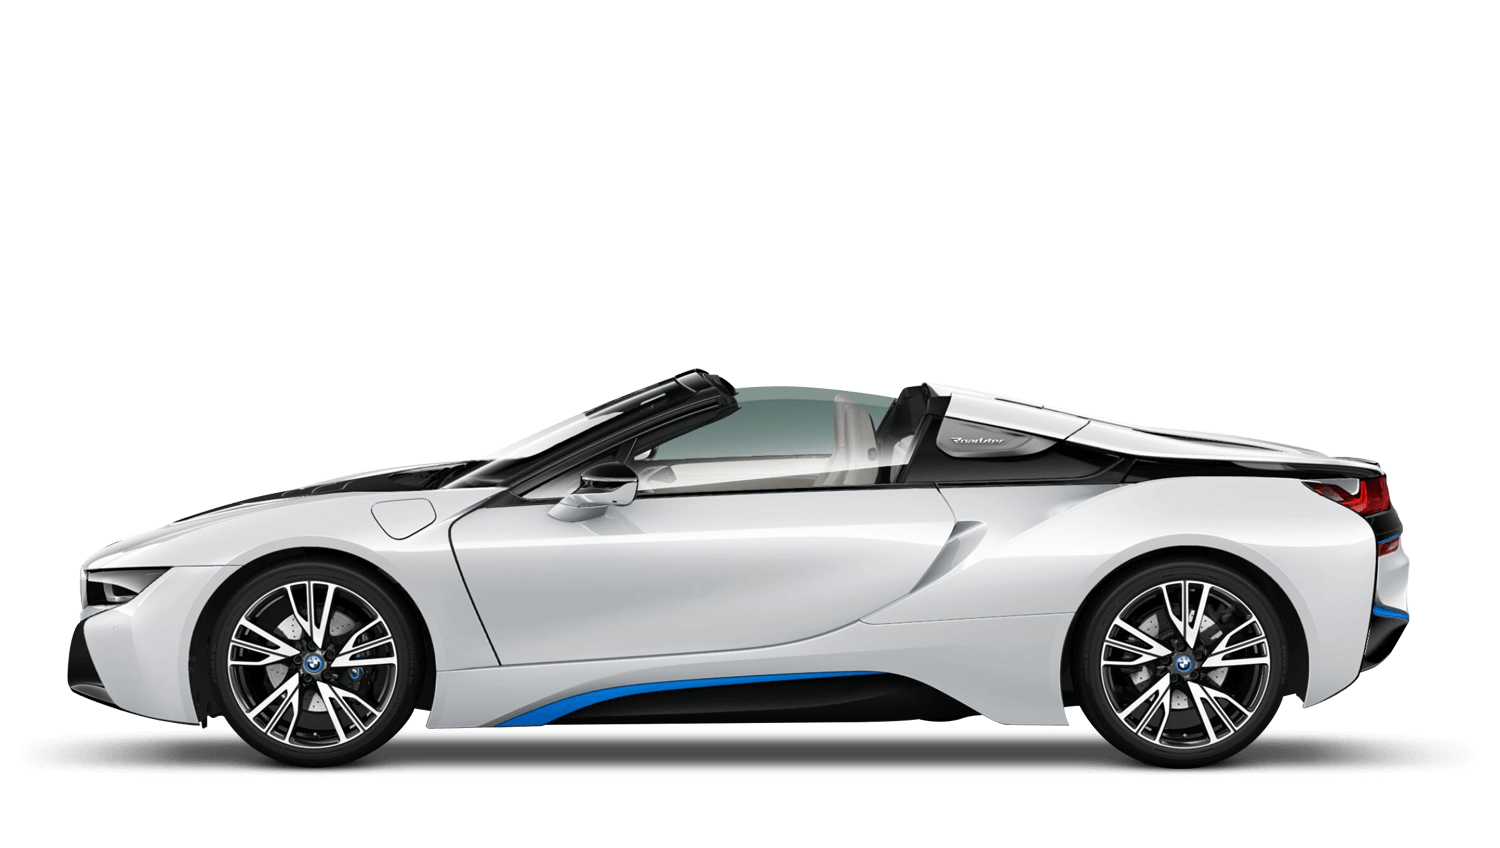 New Bmw I8 Roadster For Sale Barons Chandlers Bmw